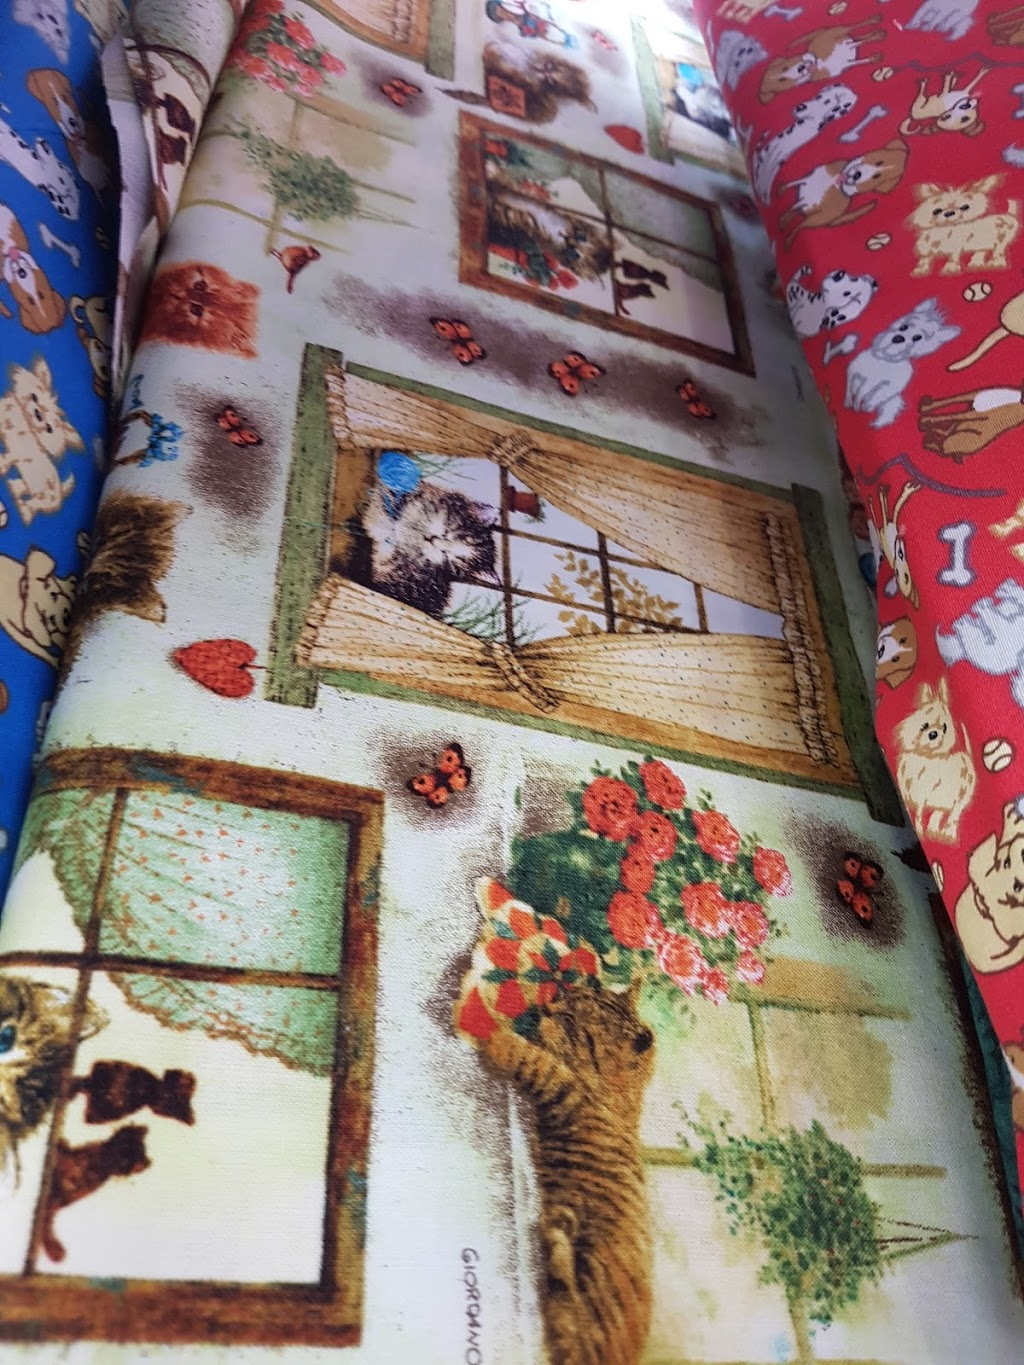 Economy Textile | home goods store | 1500 Notre Dame Ave, Winnipeg, MB R3E 0P9, Canada | 2047836958 OR +1 204-783-6958